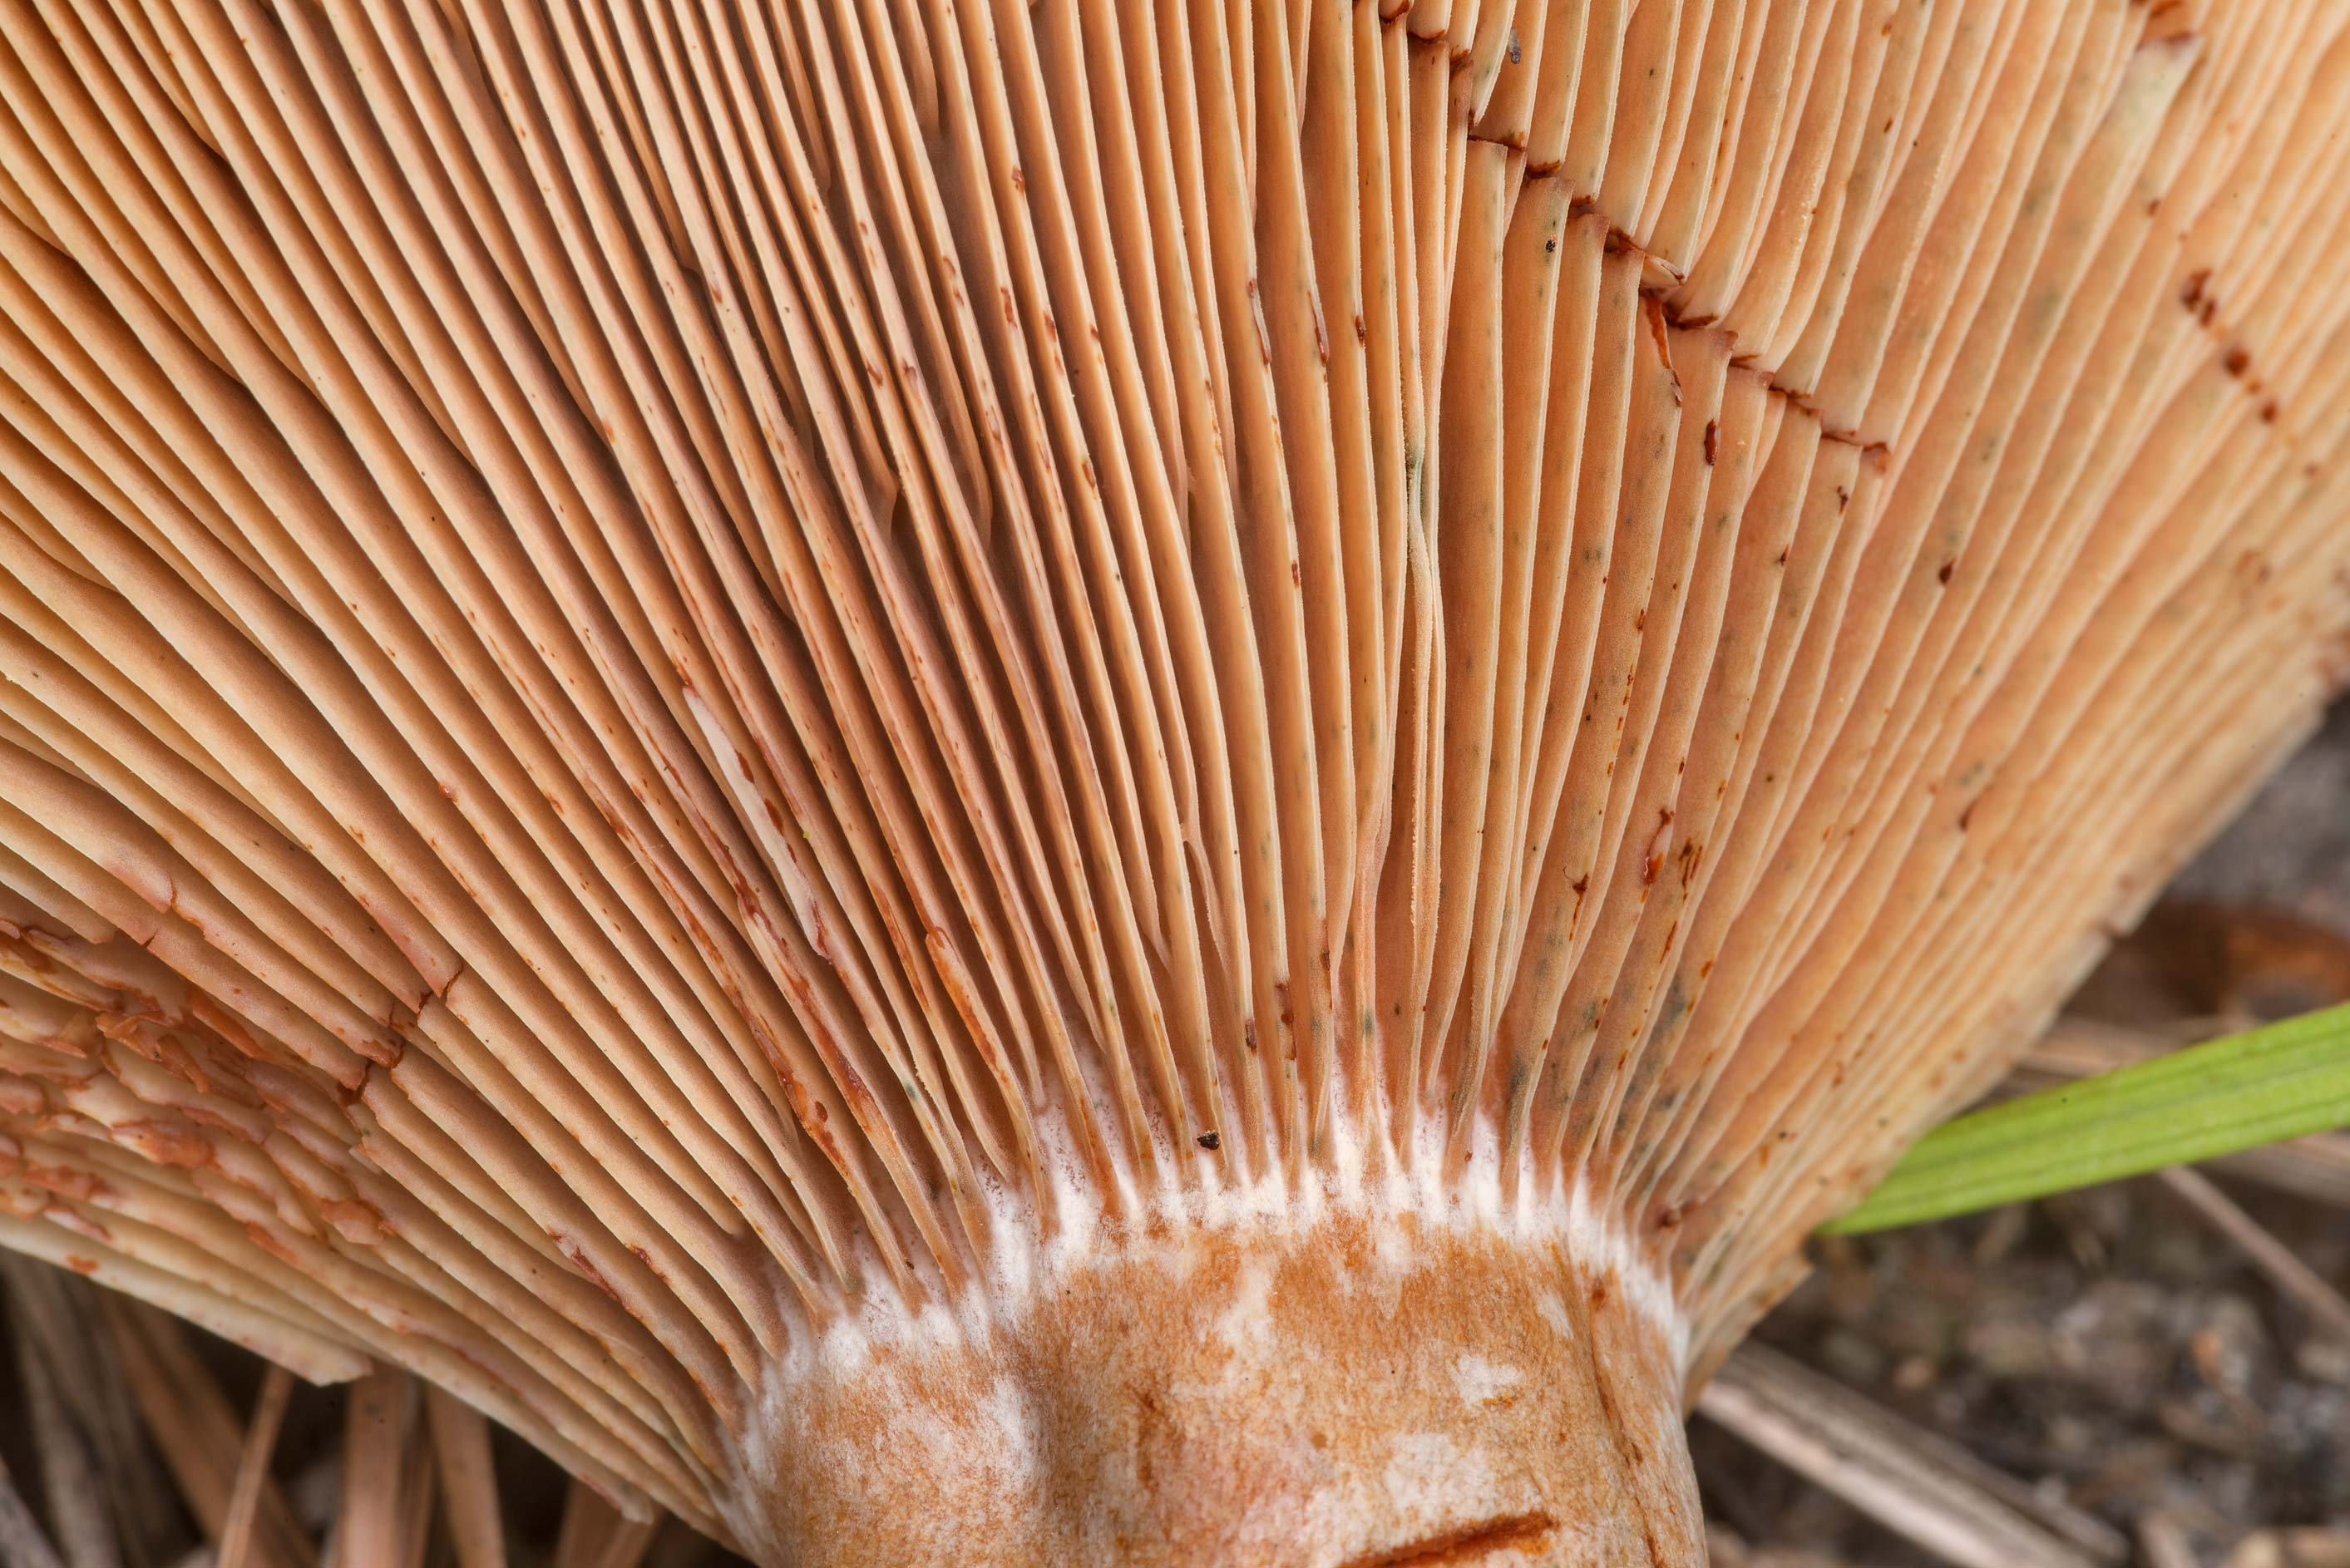 Close-up of gills of a large milkcap mushroom...National Forest near Montgomery. Texas